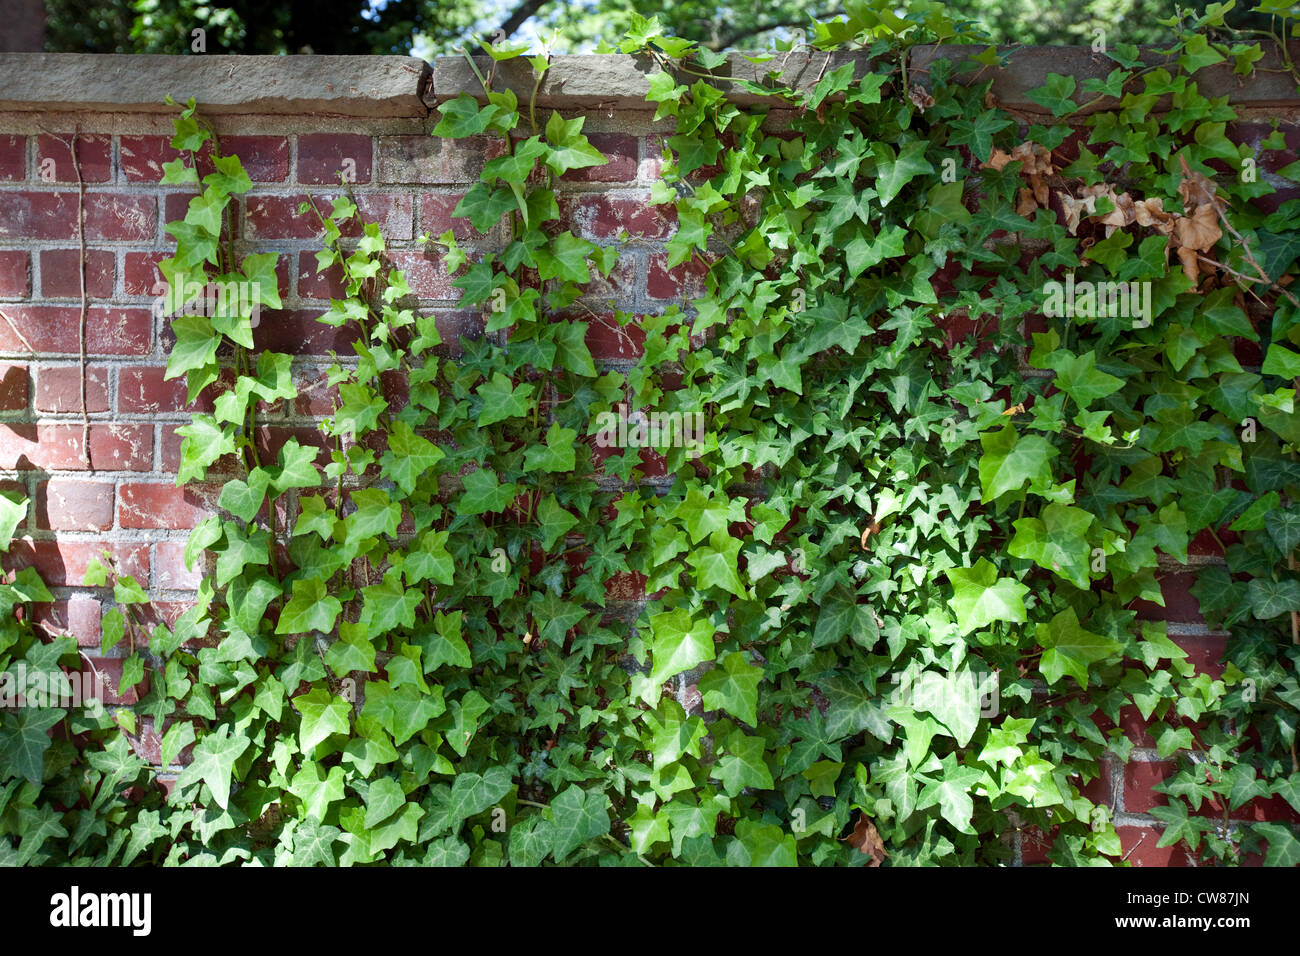 English Ivy Stock Photos & English Ivy Stock Images - Alamy on common names of indoor plants, common household plants, kinds of ivy, common indoor houseplants, english ivy, common ground cover ivy, plectranthus swedish ivy, common houseplants care of,